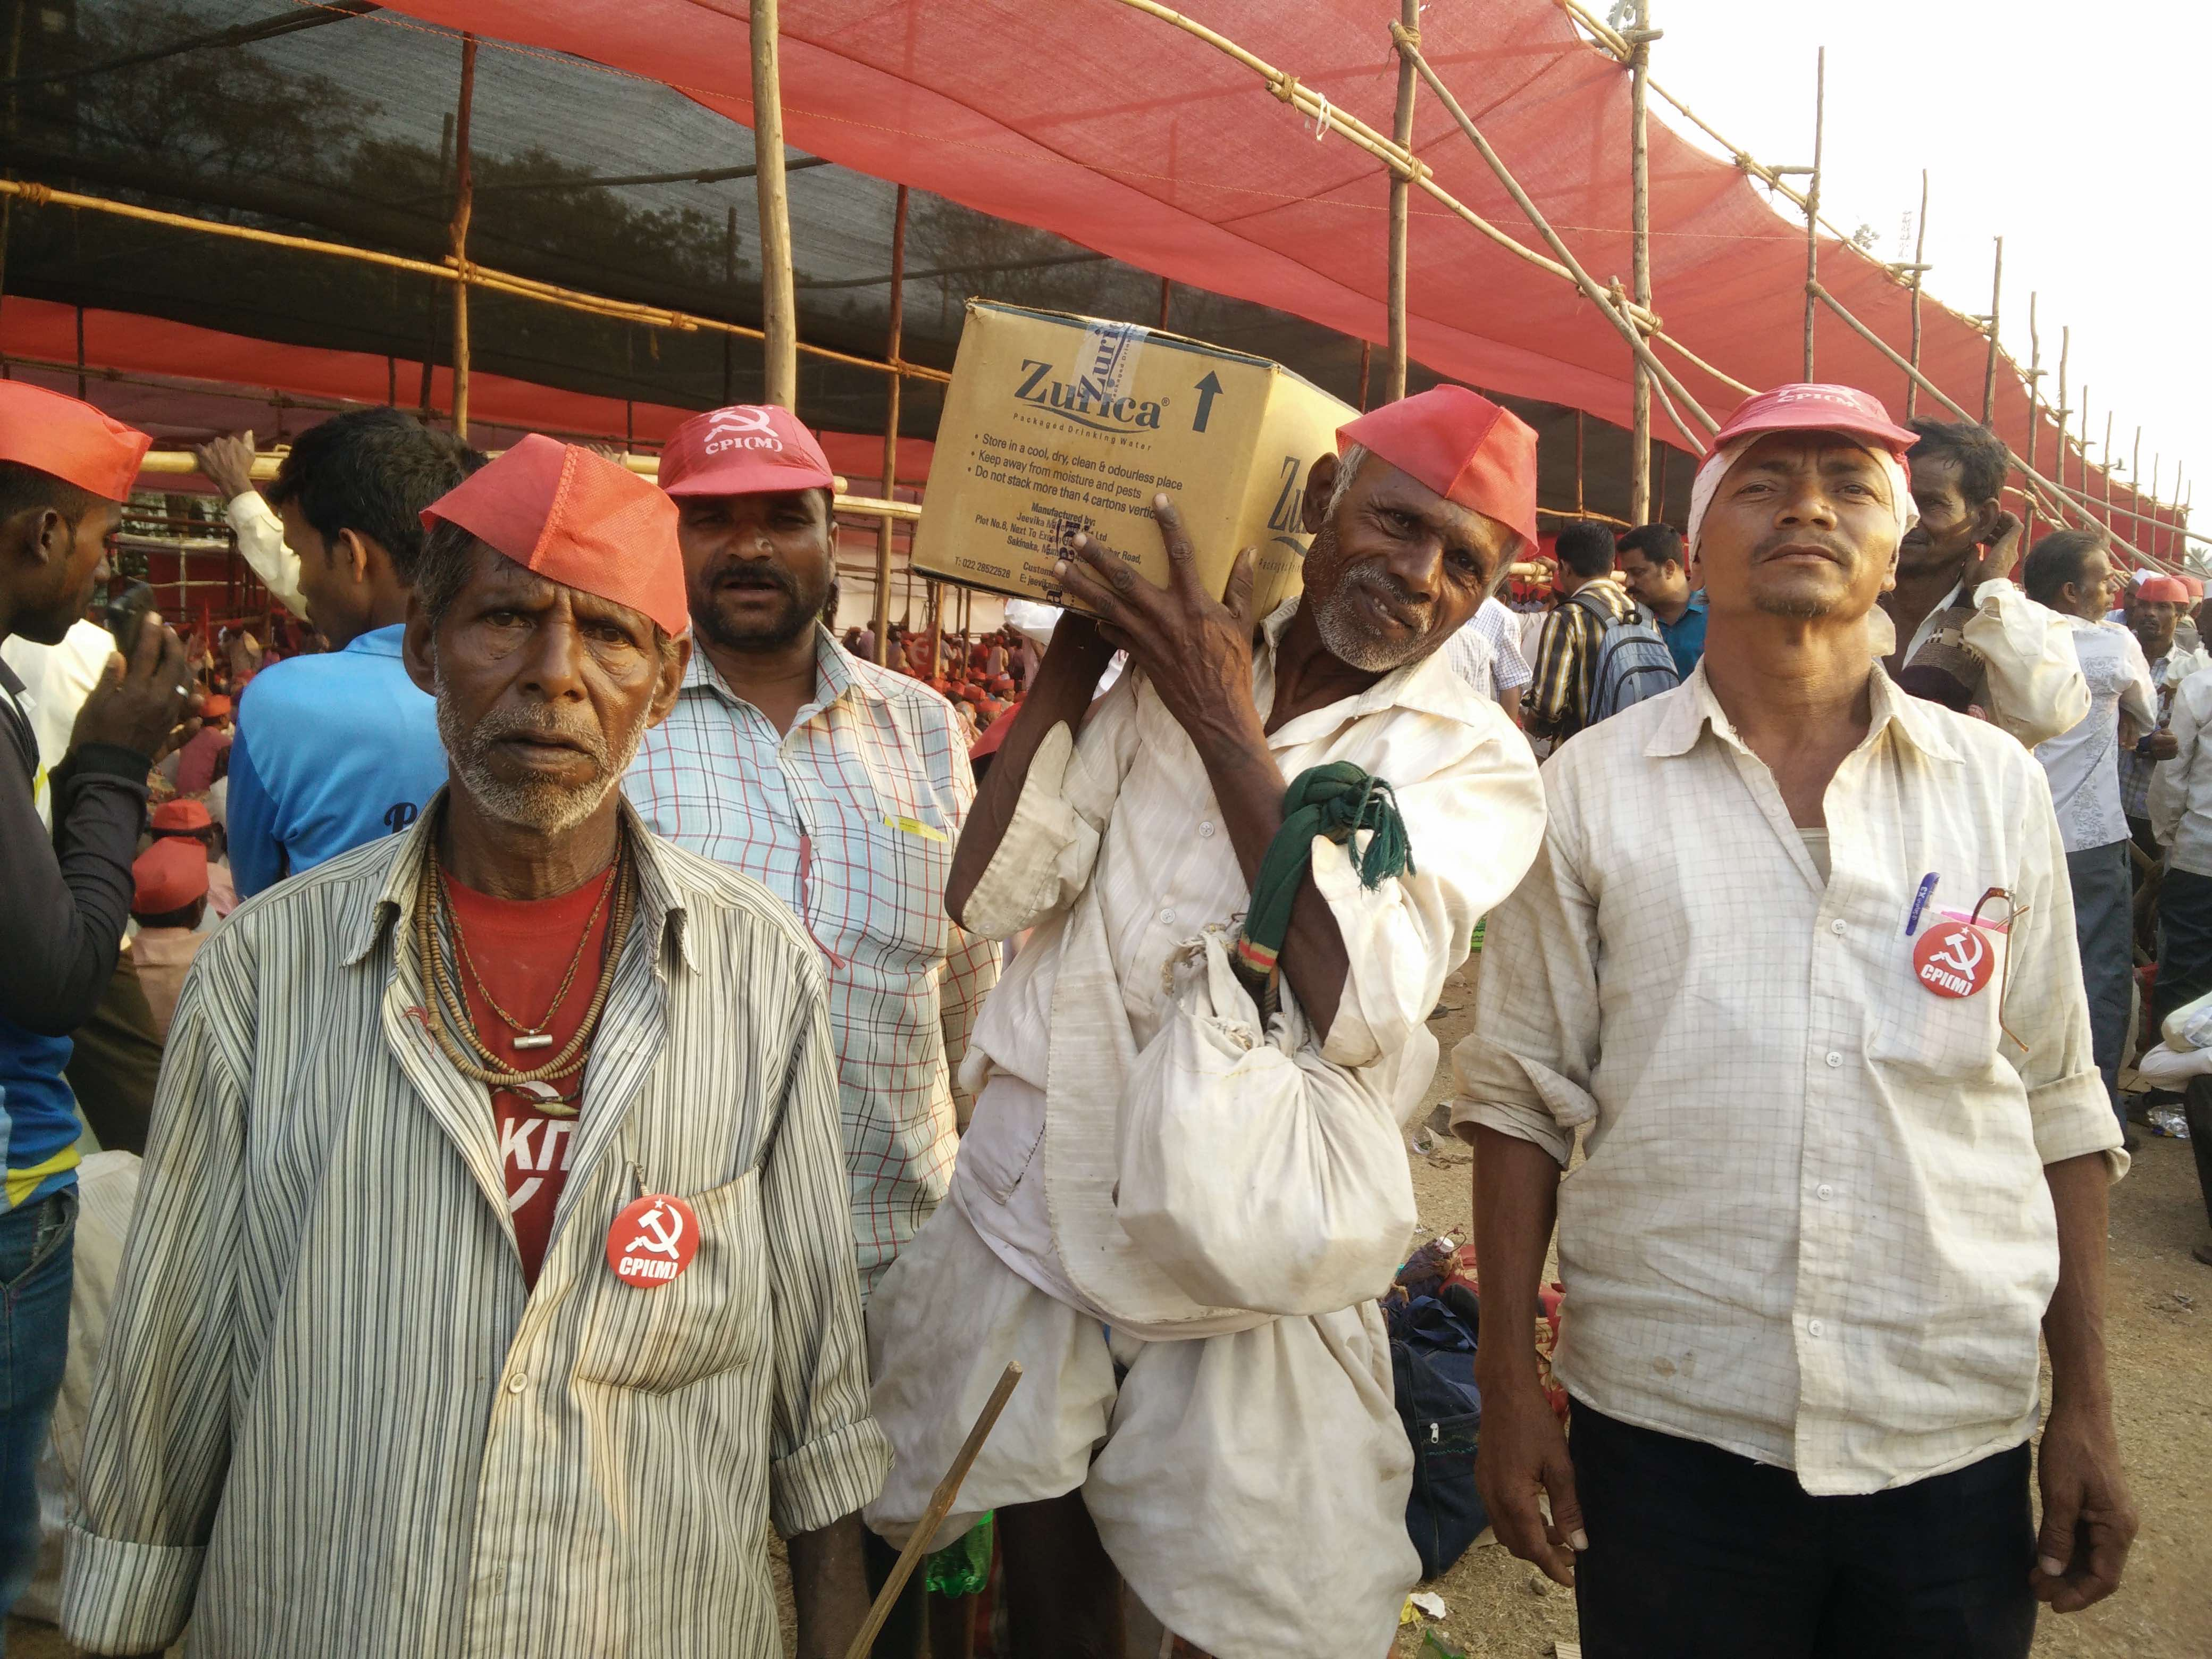 Blisters on Feet But Hopes on Land Rights Writ Large on Faces, Protesting Farmers Leave Mumbai